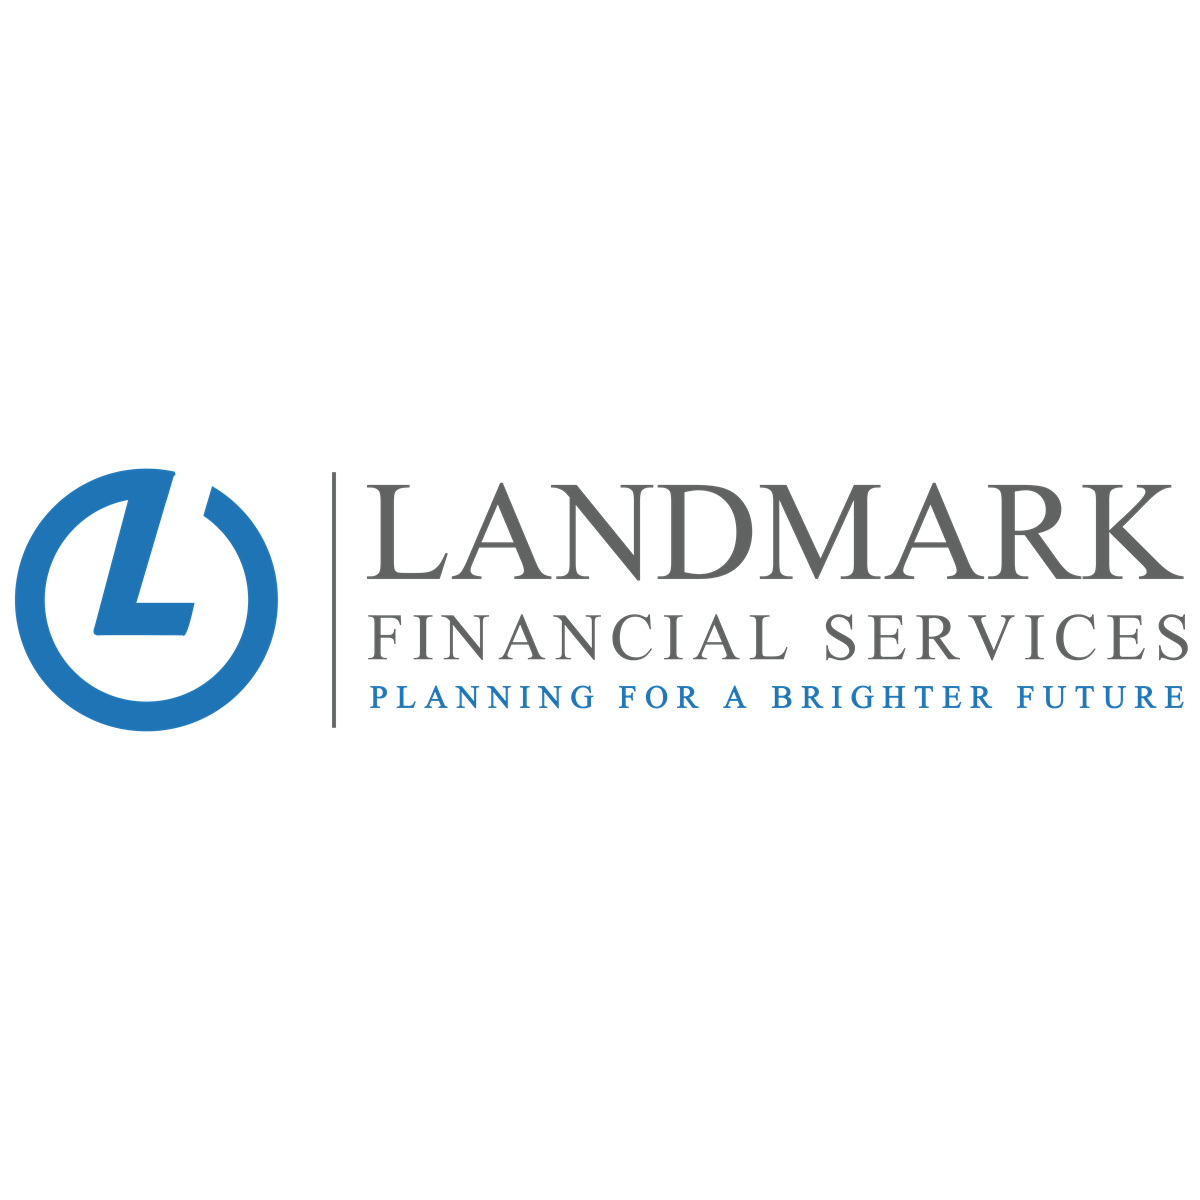 Landmark Financial Services image 3